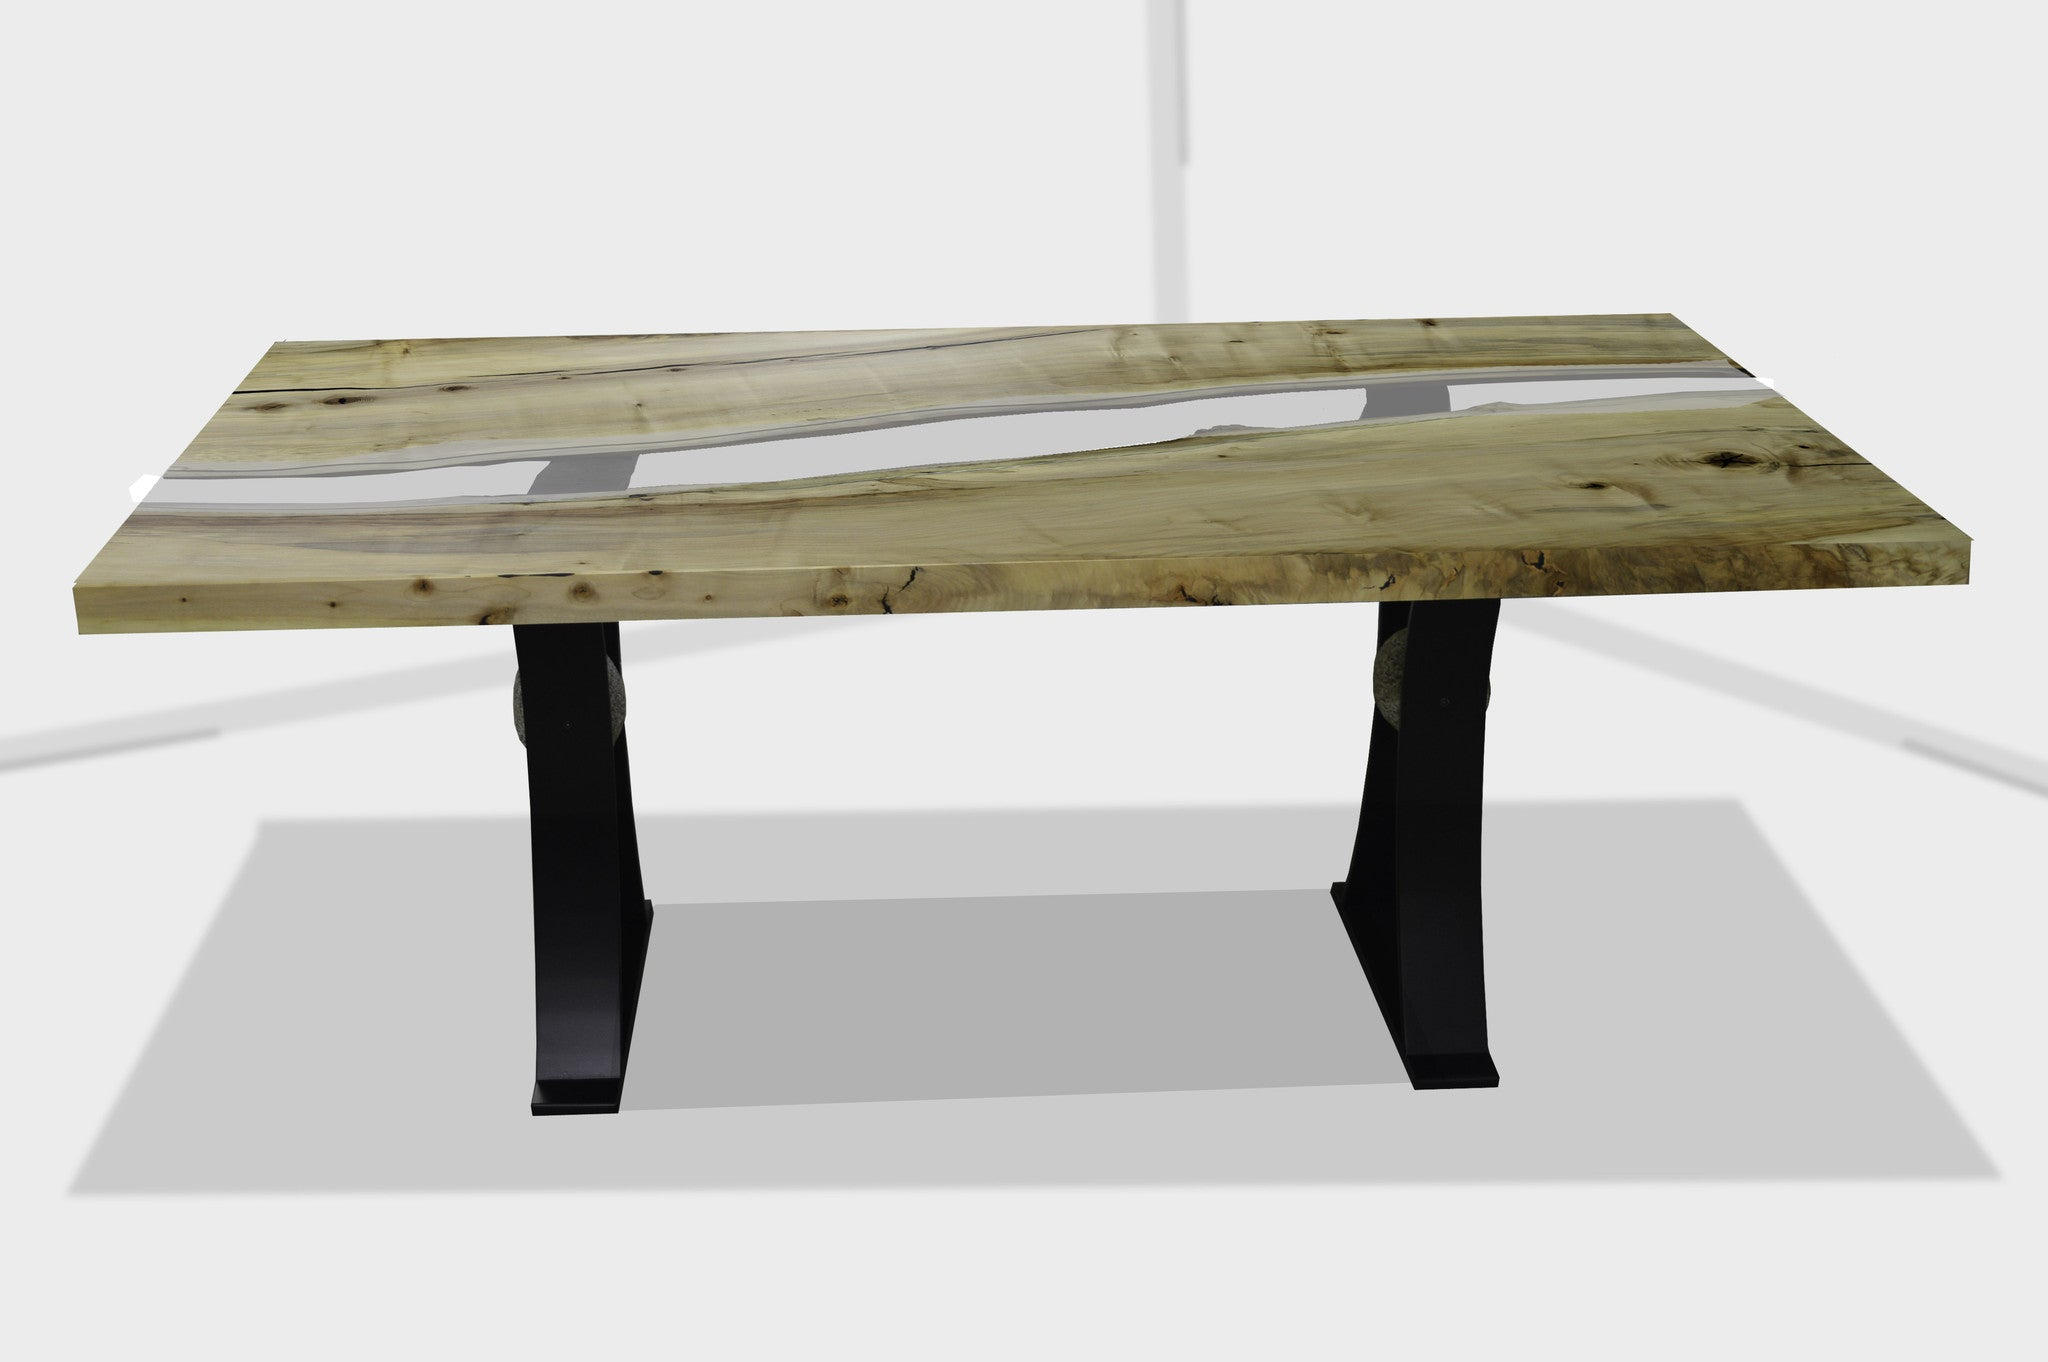 River Run Gorge Dining Table